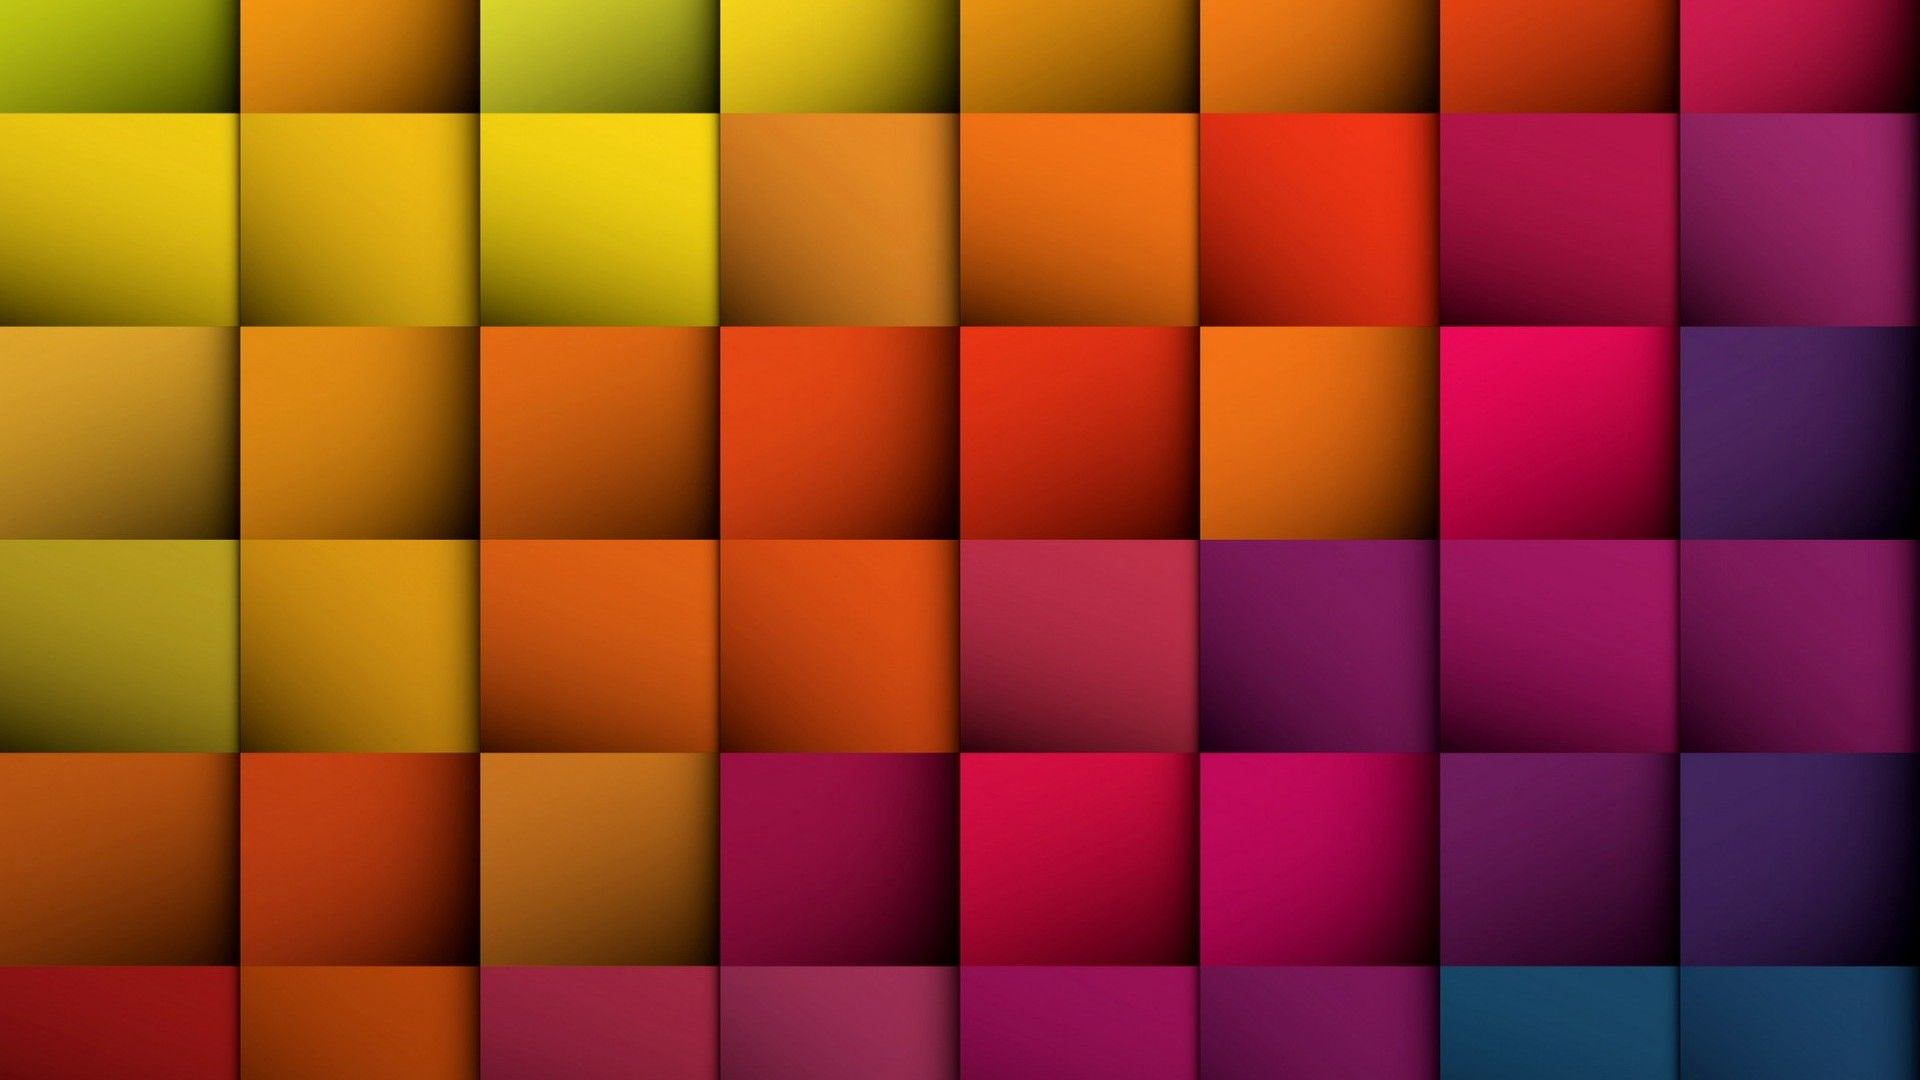 Hd wallpaper colour - Cool Colors Hd Wallpapers Find Best Latest Cool Colors Hd Wallpapers For Your Pc Desktop